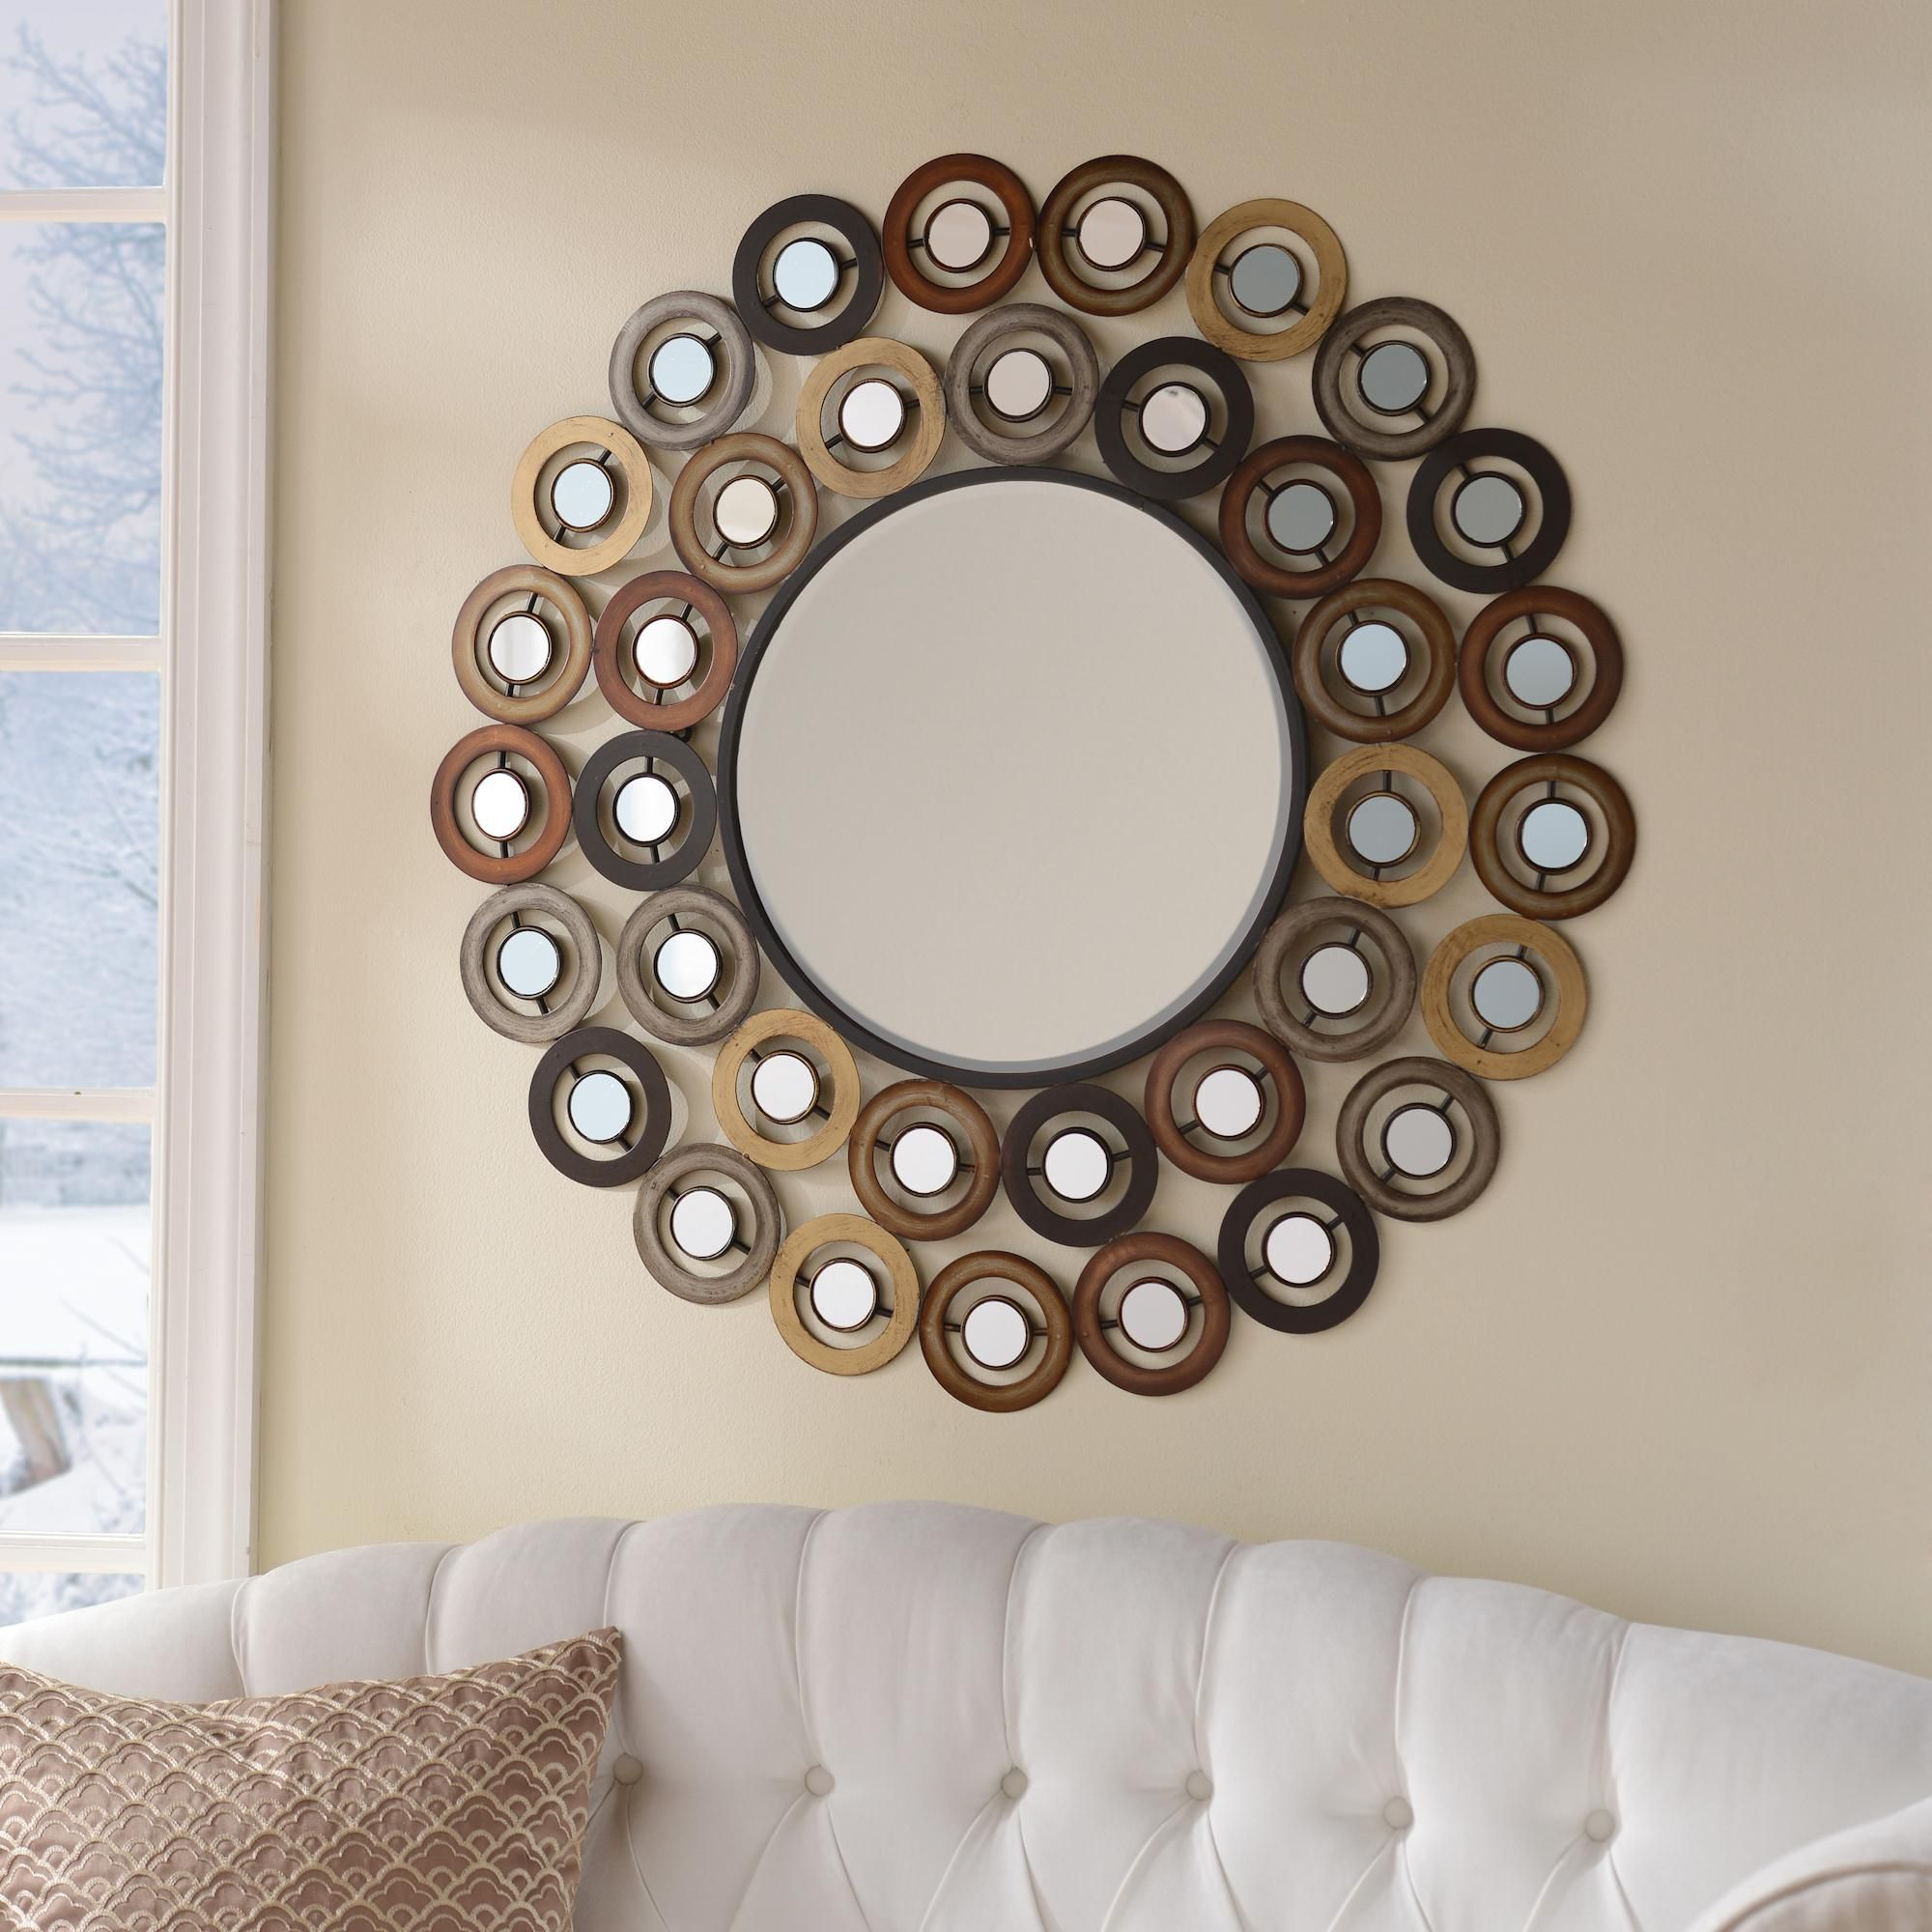 metallic dots mirror | decorative mirrors, wall decor and living rooms